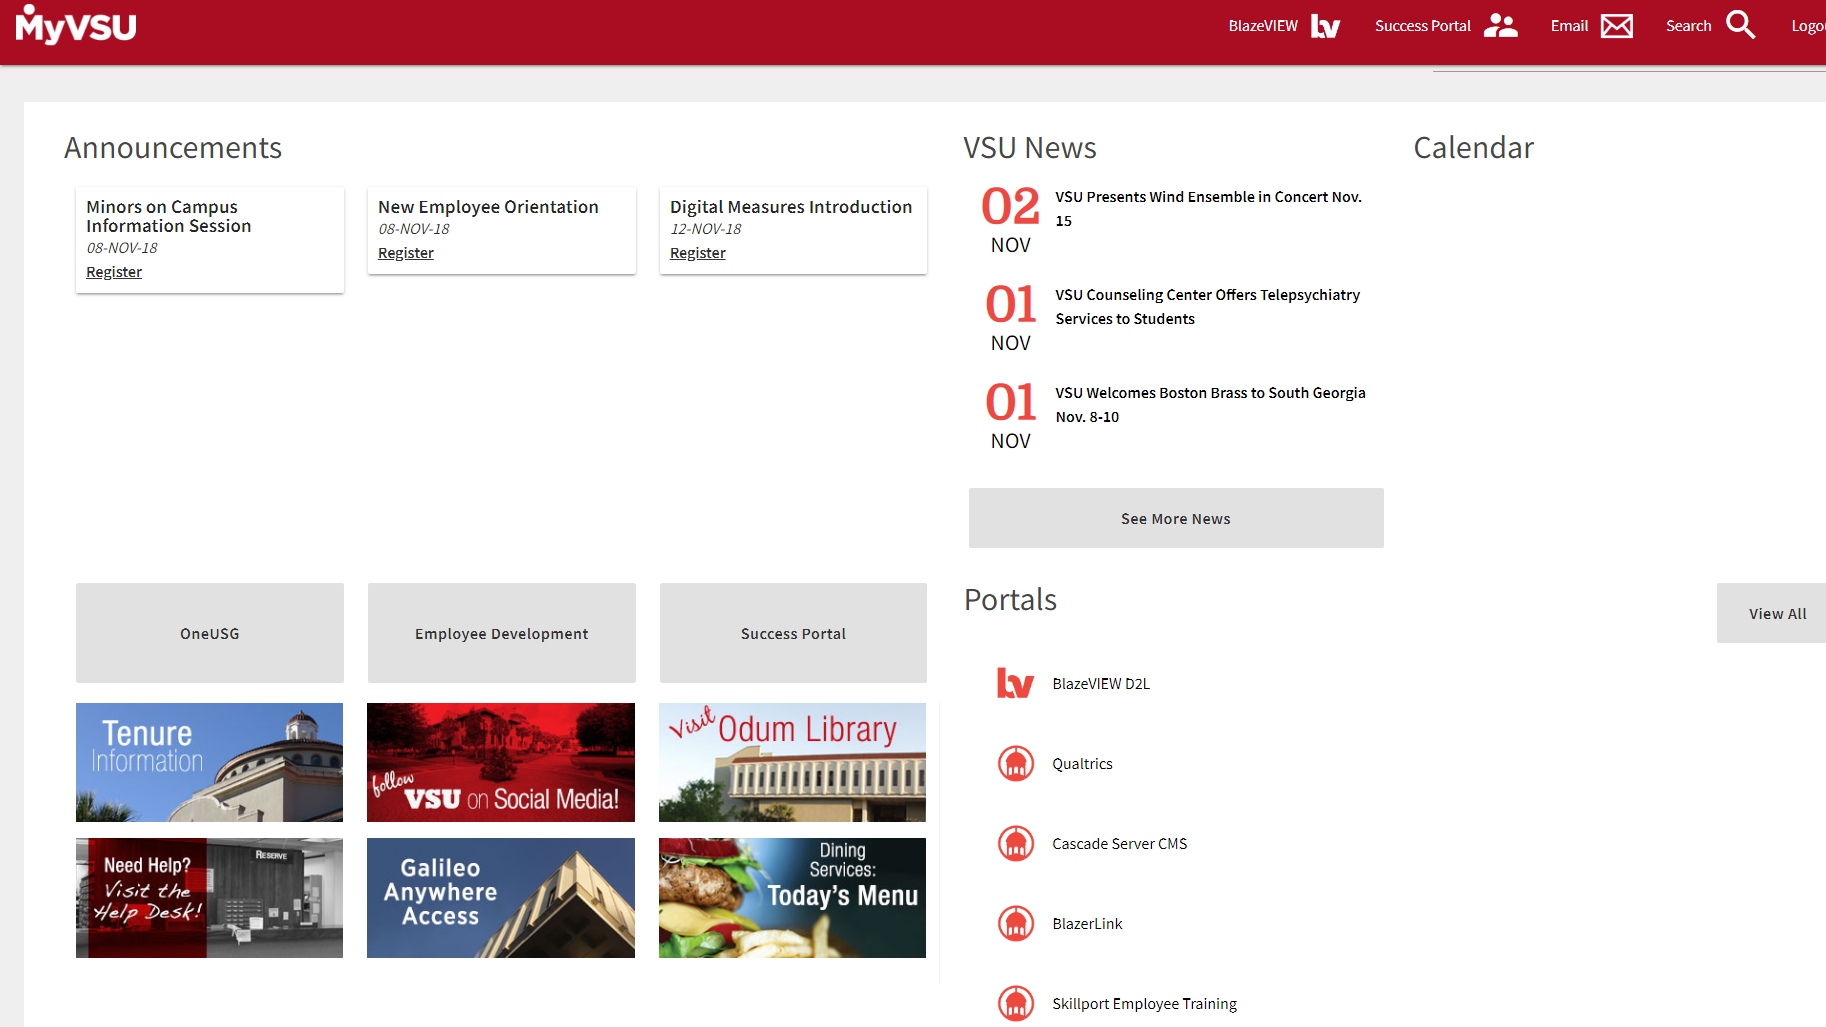 MyVSU home page showing GALILEO Anywhere Access and Visit Odum Library on the left side of the page